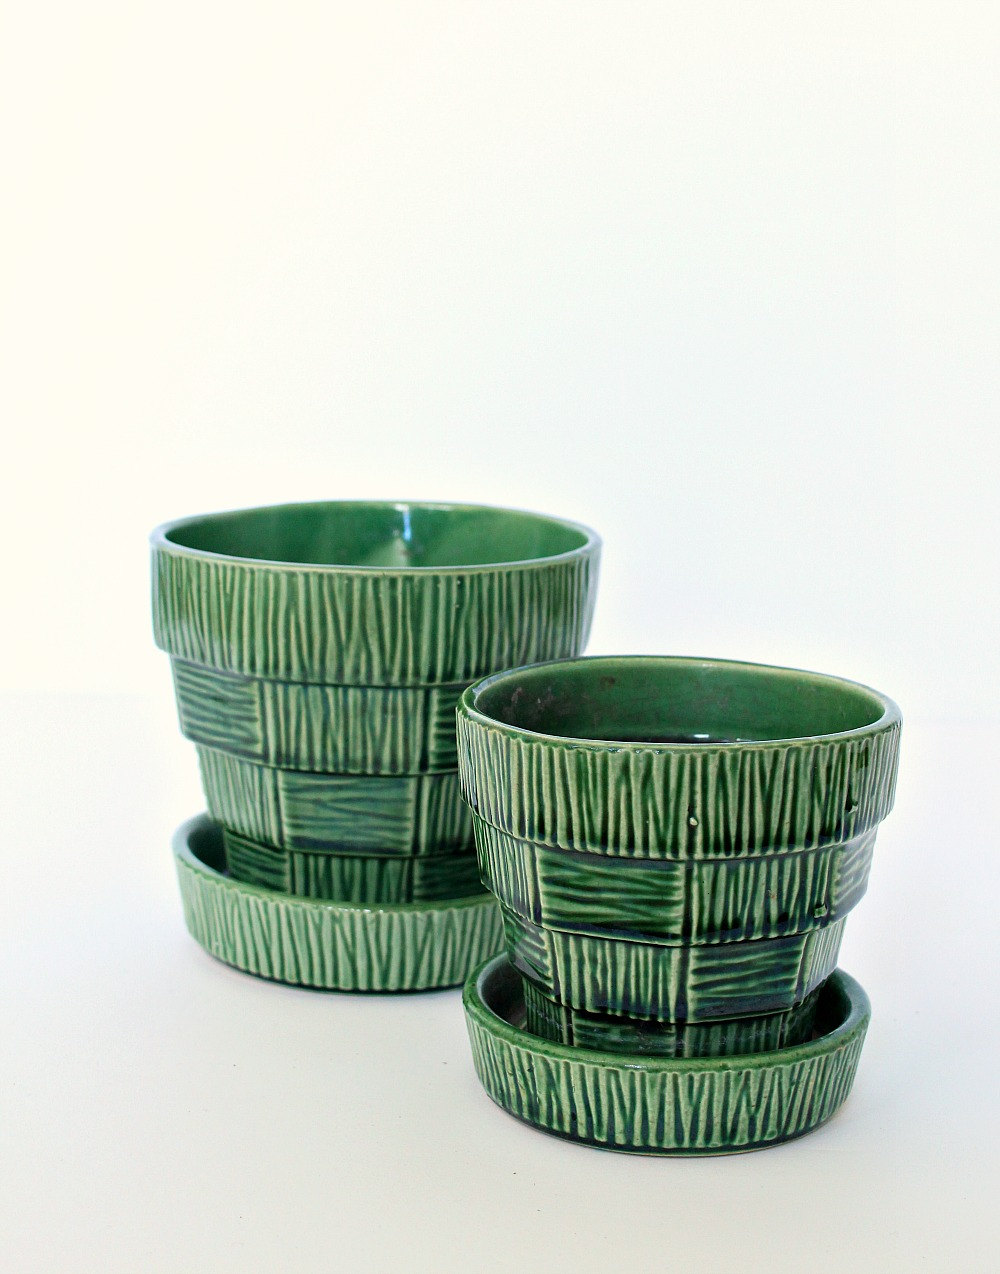 Green Basket Weave McCoy Pottery Planter